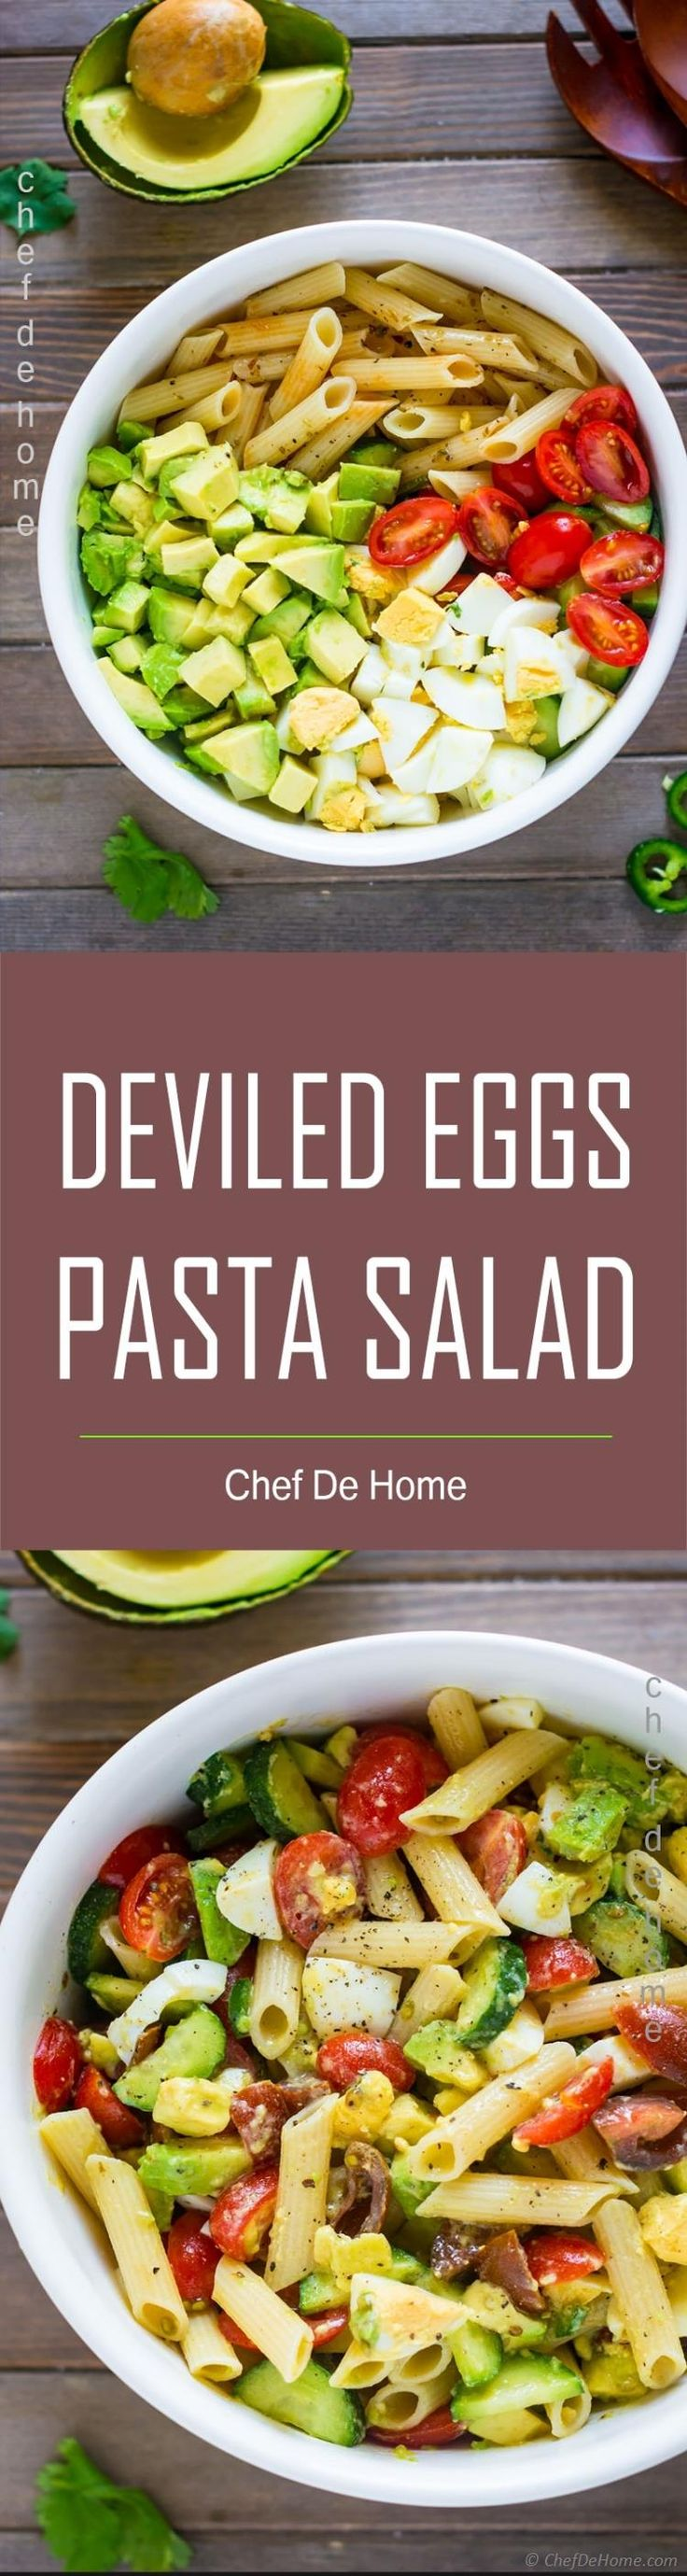 Put leftover Easter eggs to delicious use with this easy Deviled Egg Pasta Salad! In this egg pasta salad creamy avocados, sweet cherry tomatoes, crunchy cucumber, leftover/boiled eggs meet a zesty lemony dressing.. for a scrumptious dinner pasta salad!